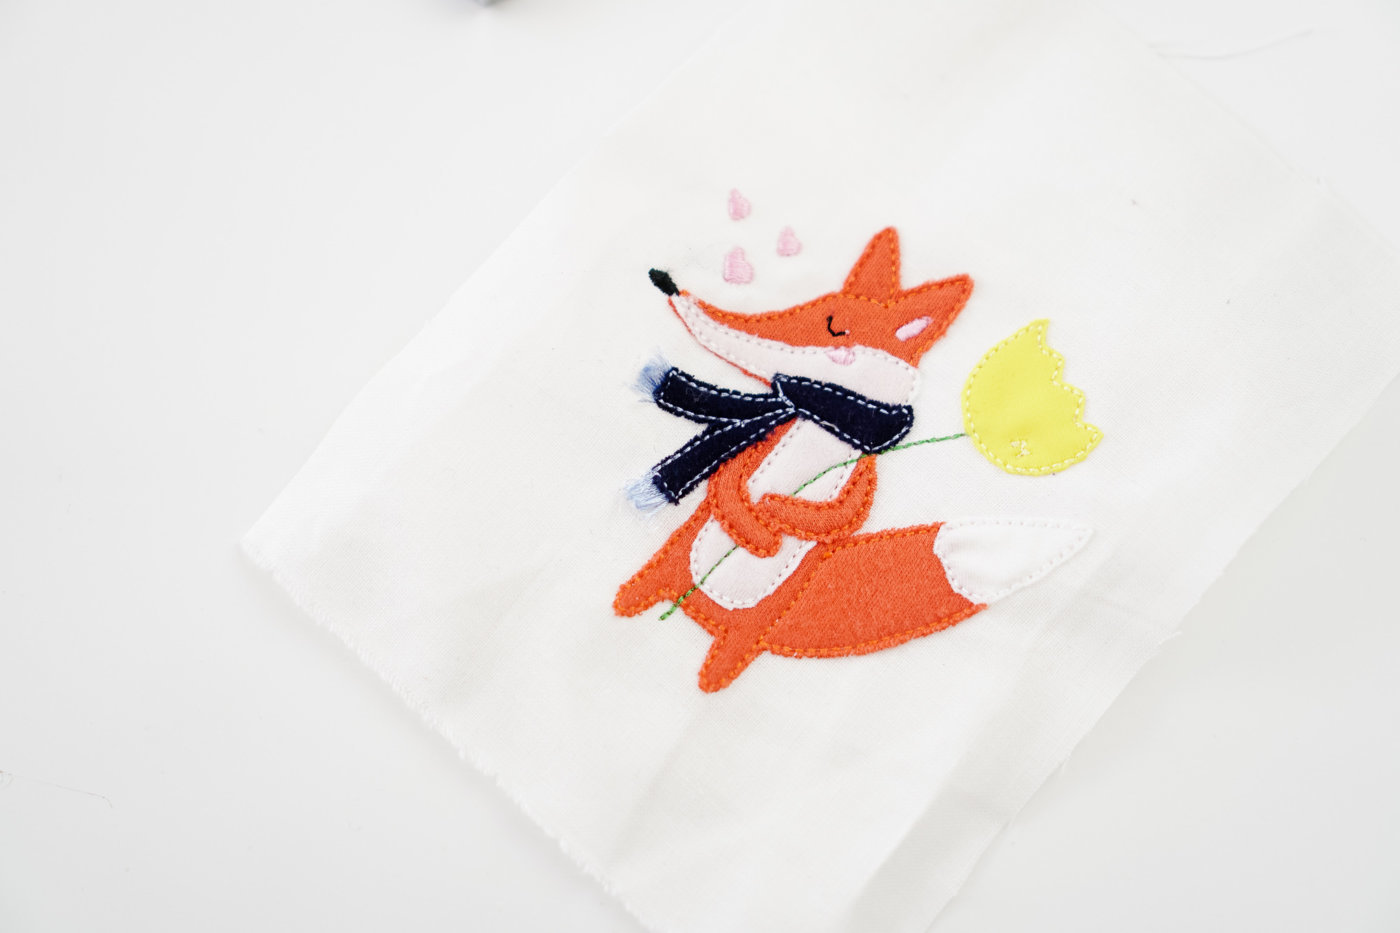 Fuchs ITH [object object] Fox applique design 🦊 stickdatei applikation fuchs 1400x933